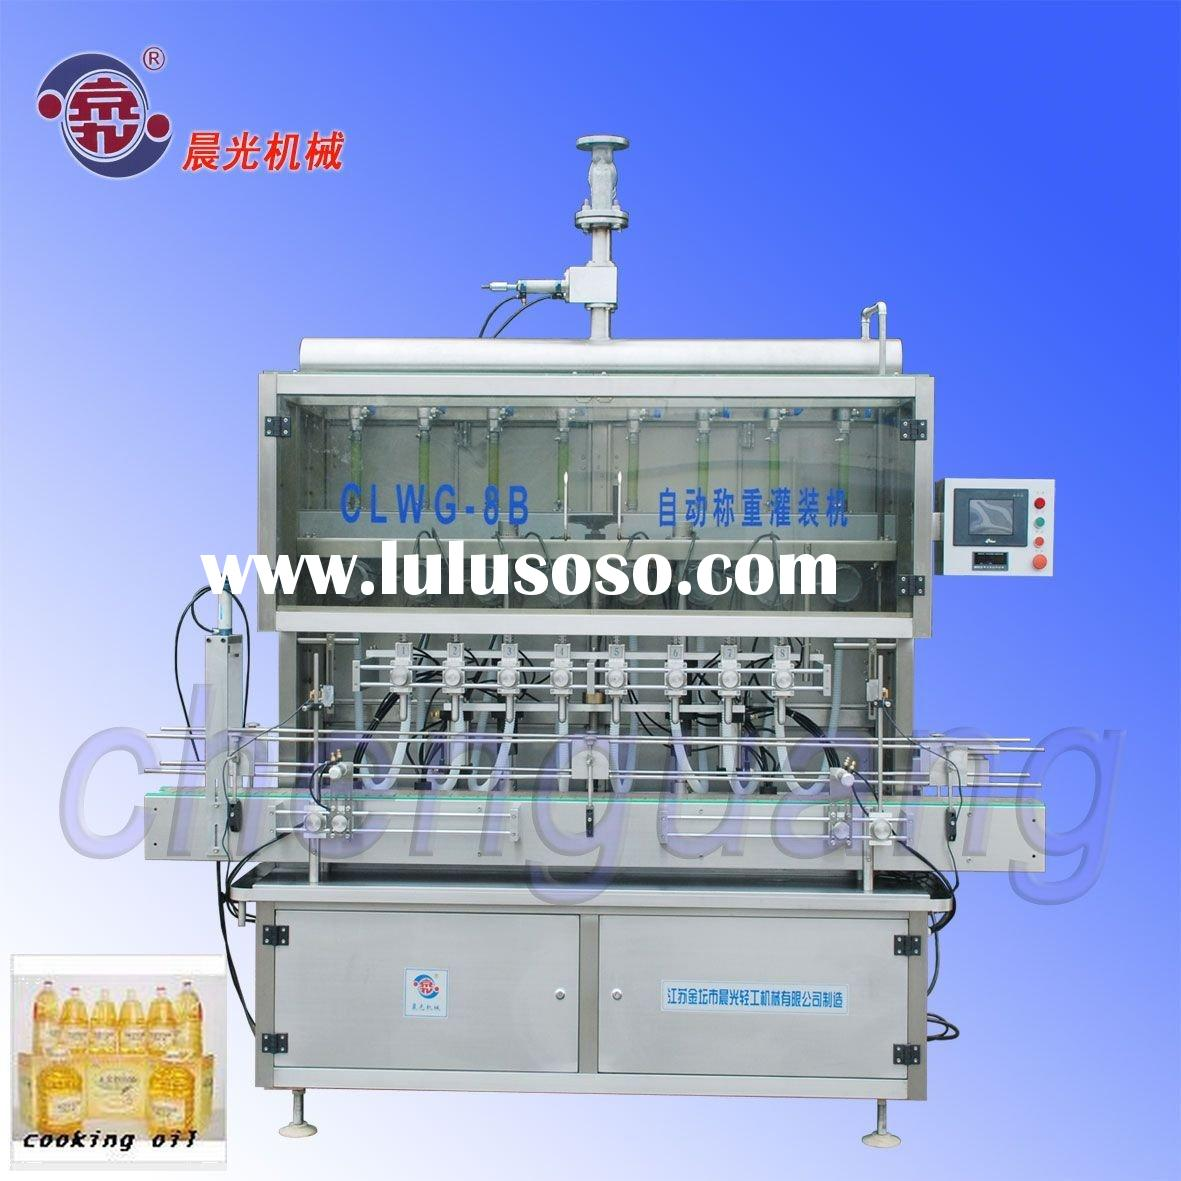 CLWG-8B Automatic Weighing Filling Machine